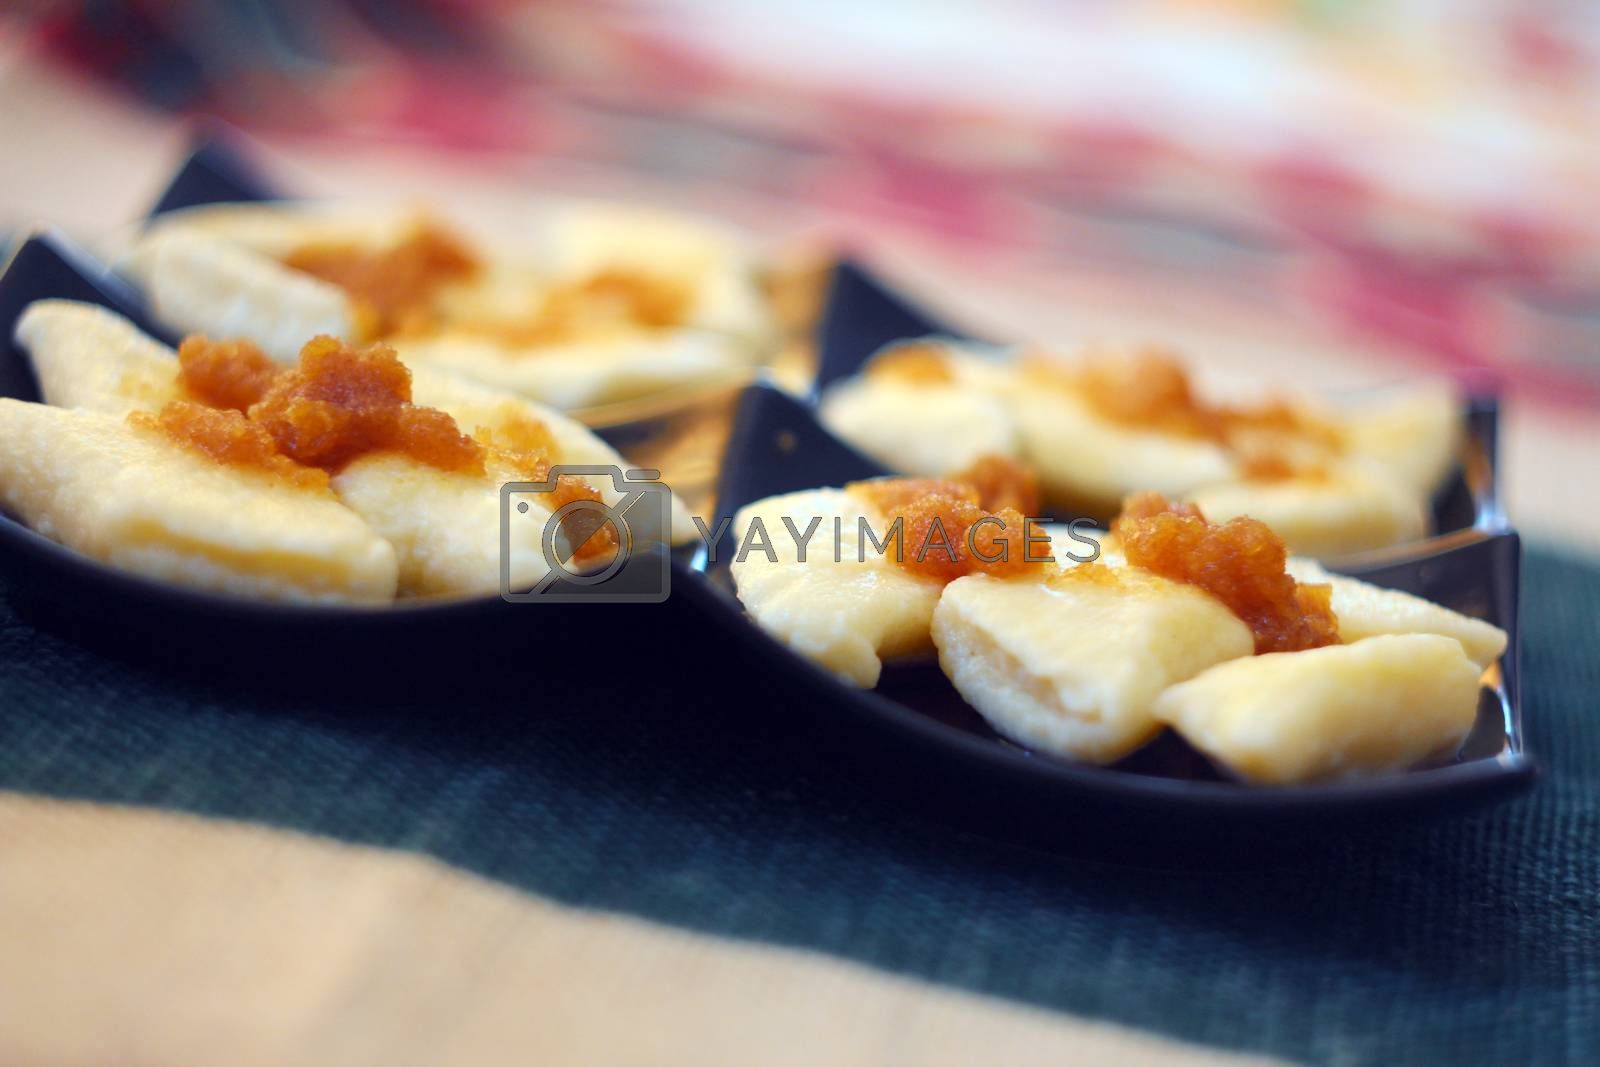 Royalty free image of Cooked traditional lazy noodles with crumbs on black plate by sanzios